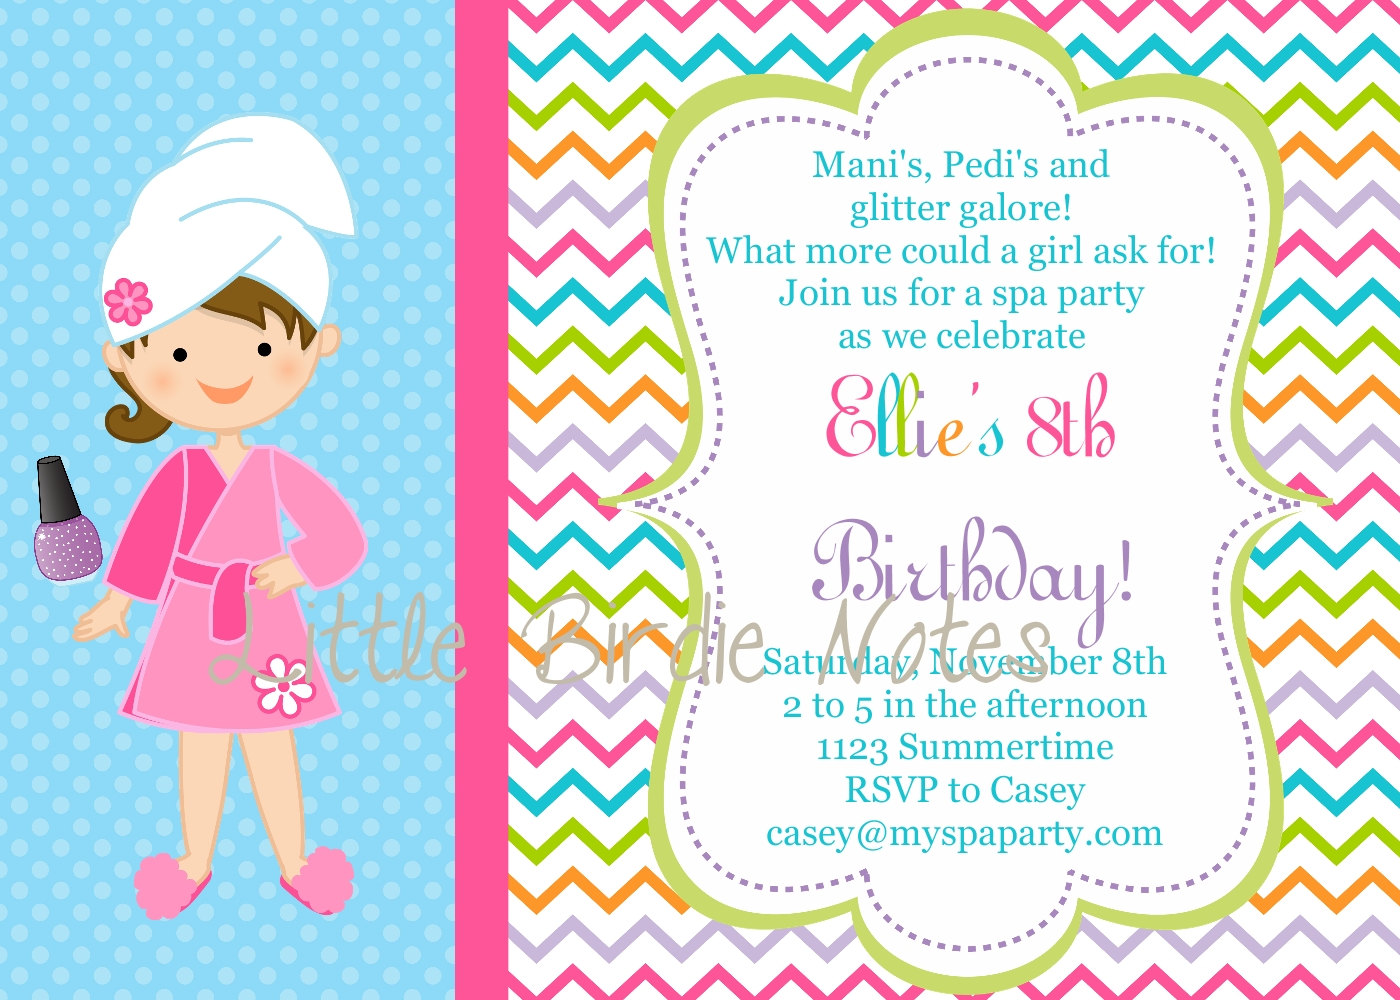 Free printable spa birthday party invitations dolanpedia thats all for the spa birthday ideas good luck preparing your party filmwisefo